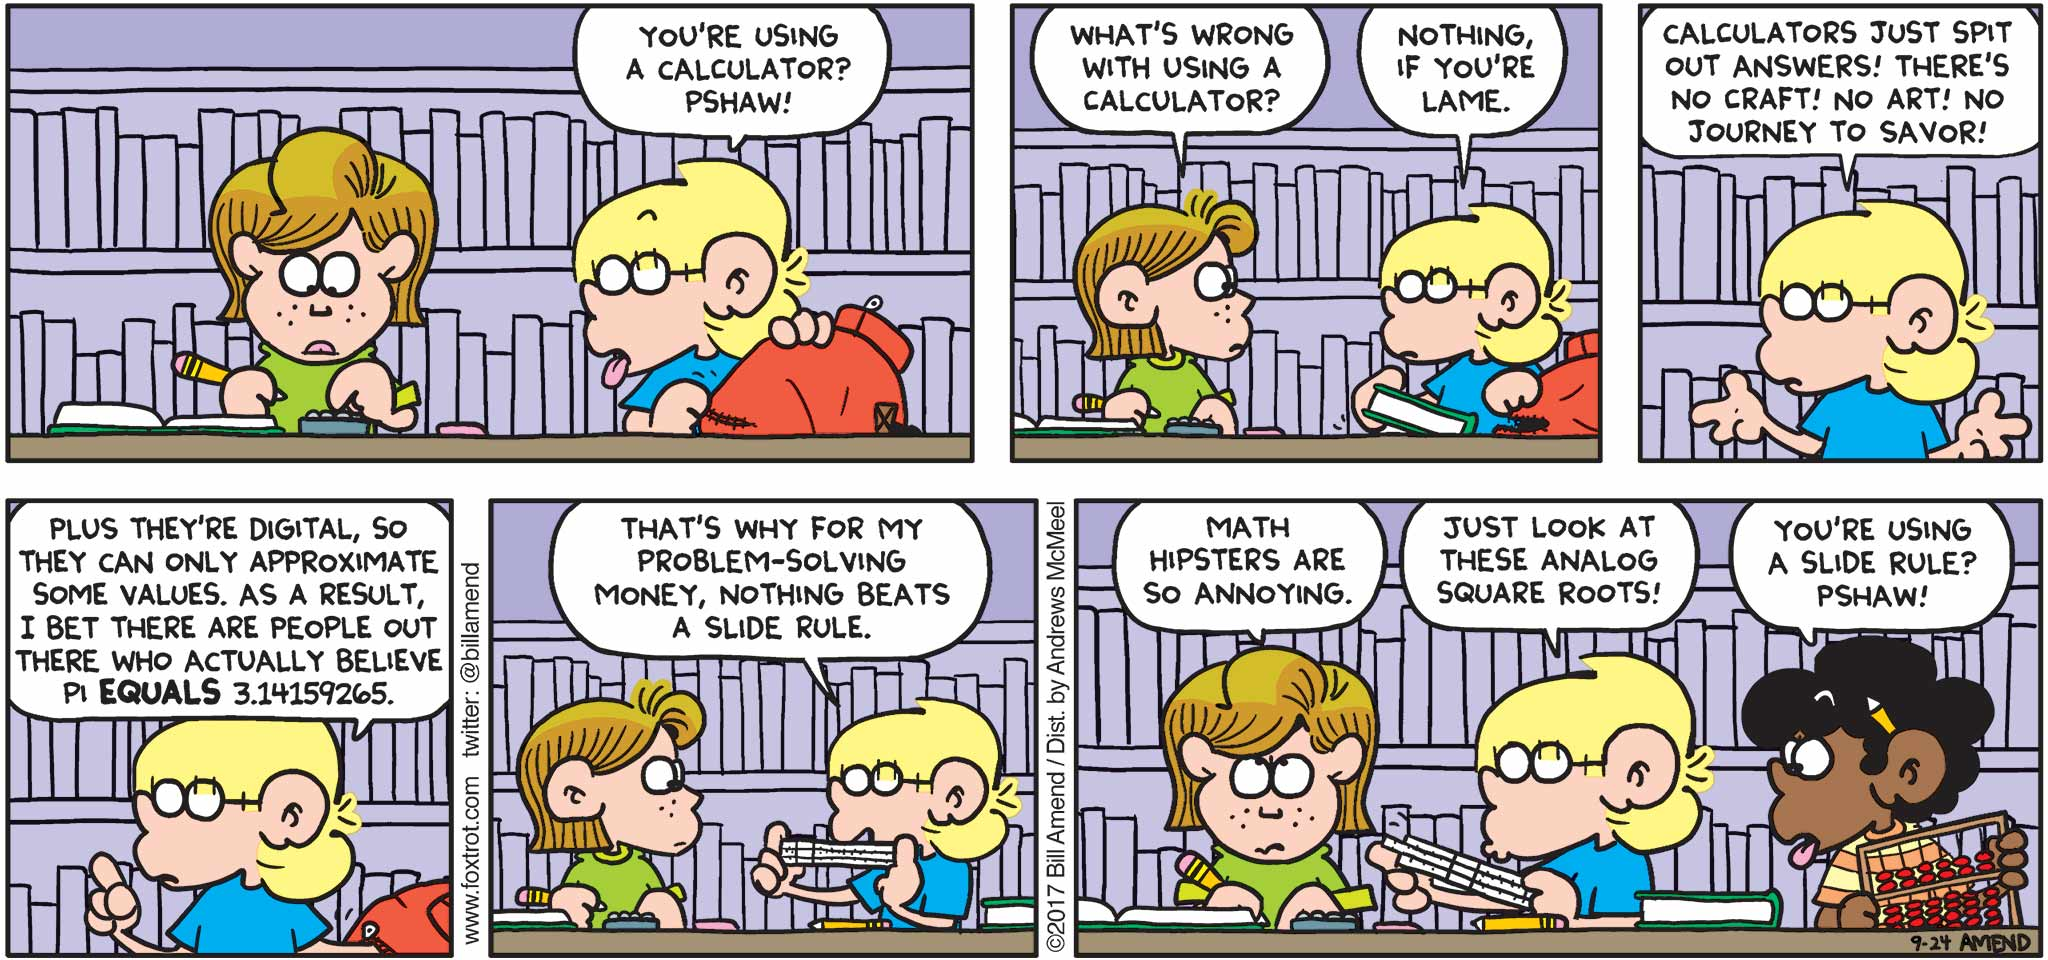 "FoxTrot by Bill Amend - ""Math Hipsters"" published September 24, 2017 - Jason says: You're using a calculator? Pshaw! Eileen says: What's wrong with using a calculator? Jason says: Nothing, if you're lame. Calculators just spit out answers! There's no craft! No art! No journey to savor! Plus they're digital, so they can only approximate some values. As a result, I bet there are people out there who actually believe Pi equals 3.14159265. That's why for my problem-solving money, nothing beats a slide rule. Eileen says: Math hipsters are so annoying. Jason says: Just look at these analog square roots! Marcus says: You're using a slide rule? Pshaw!"